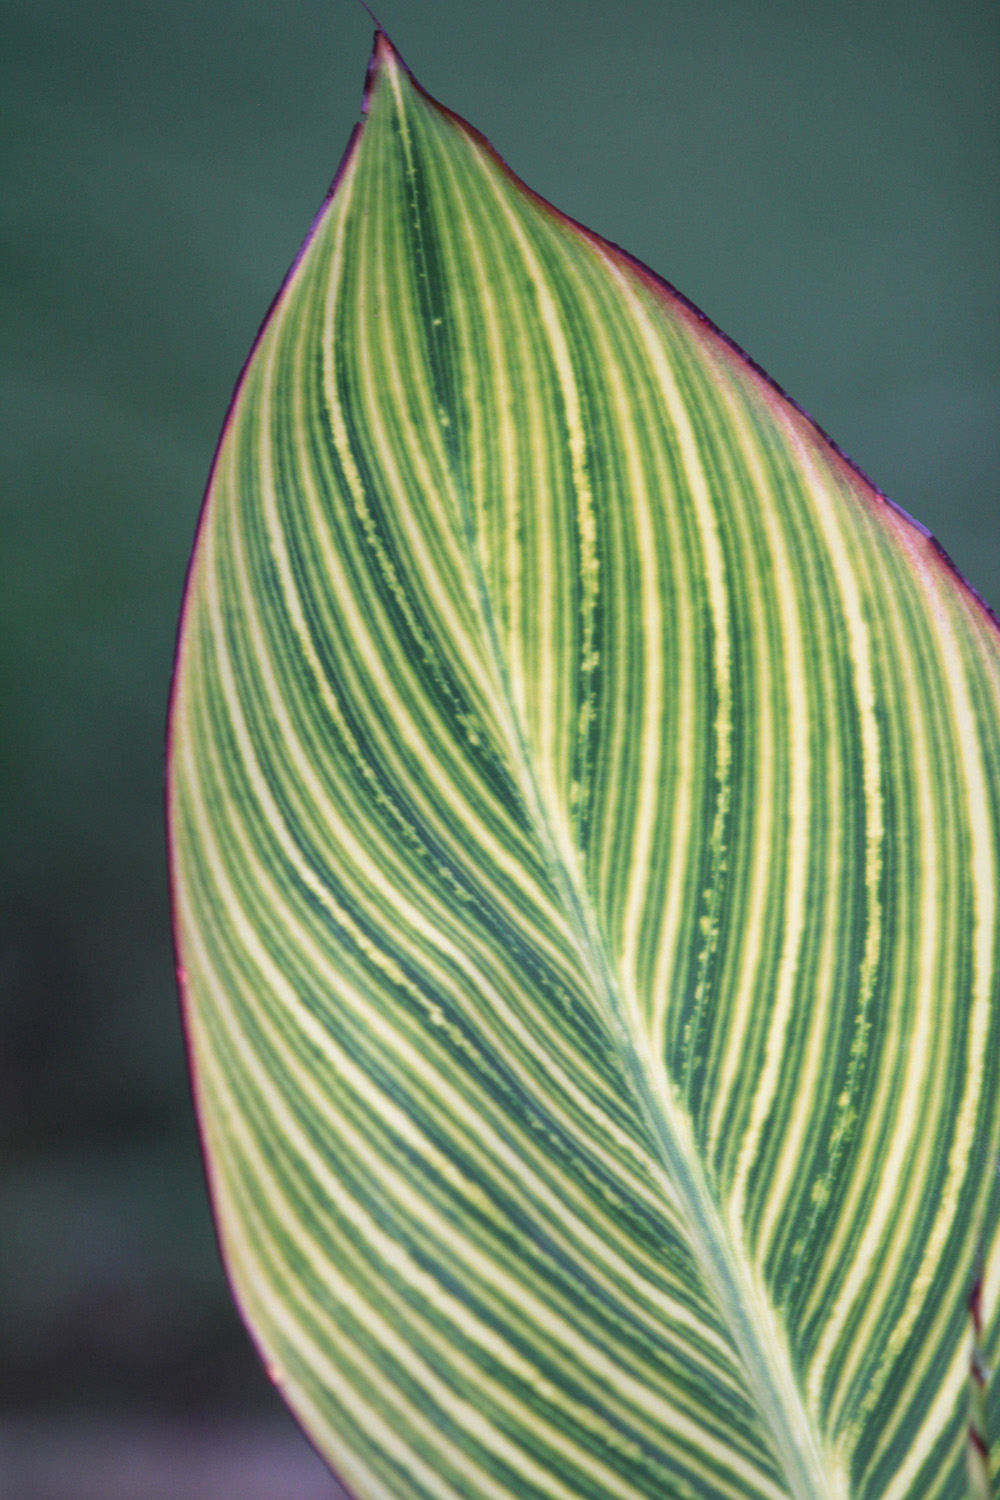 Lines and symmetry of a leaf